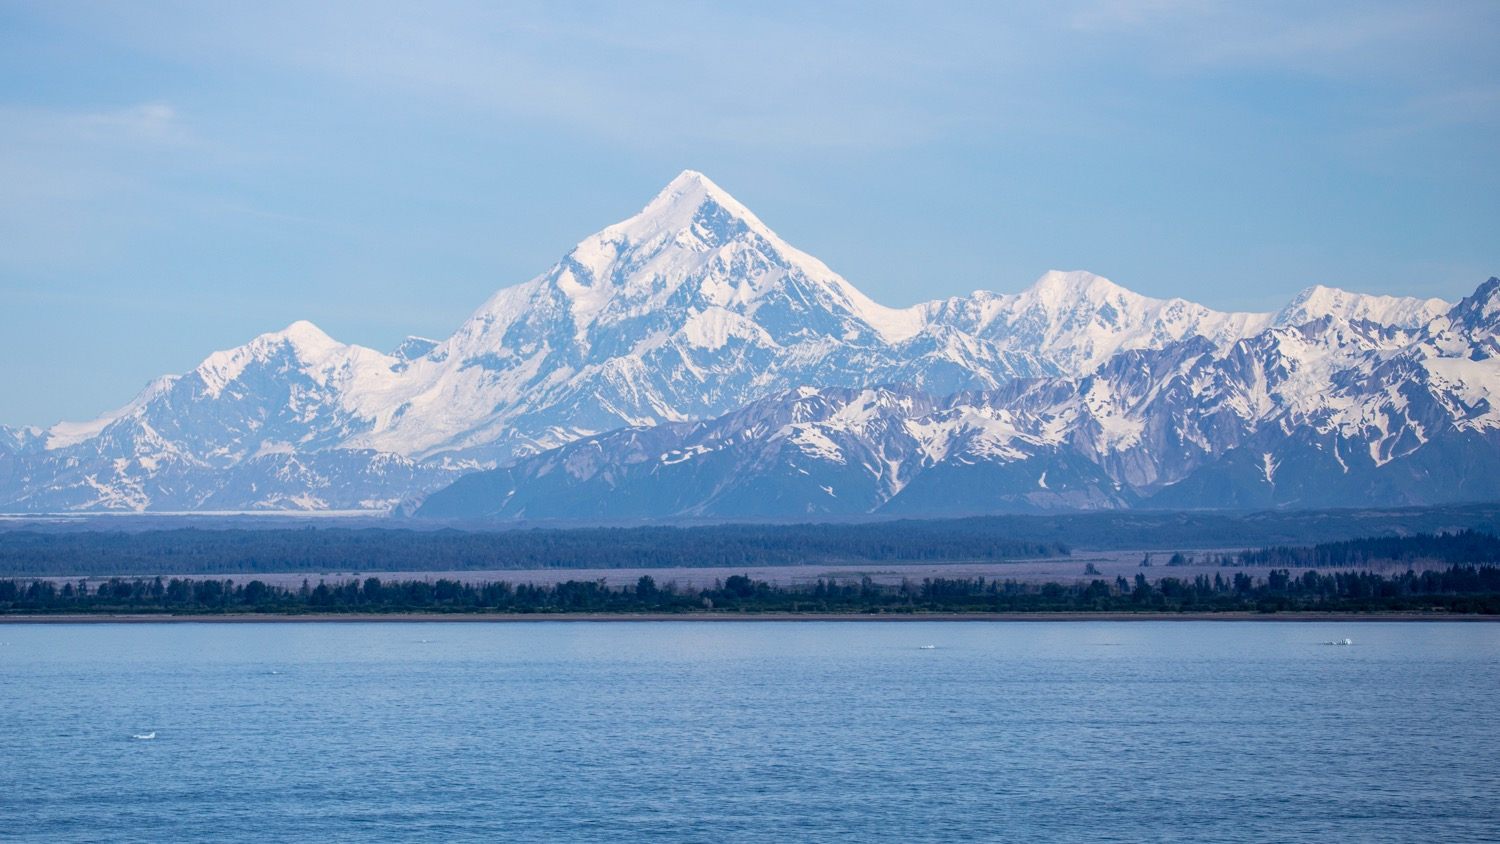 A better, more clear view of Mount Saint Elias